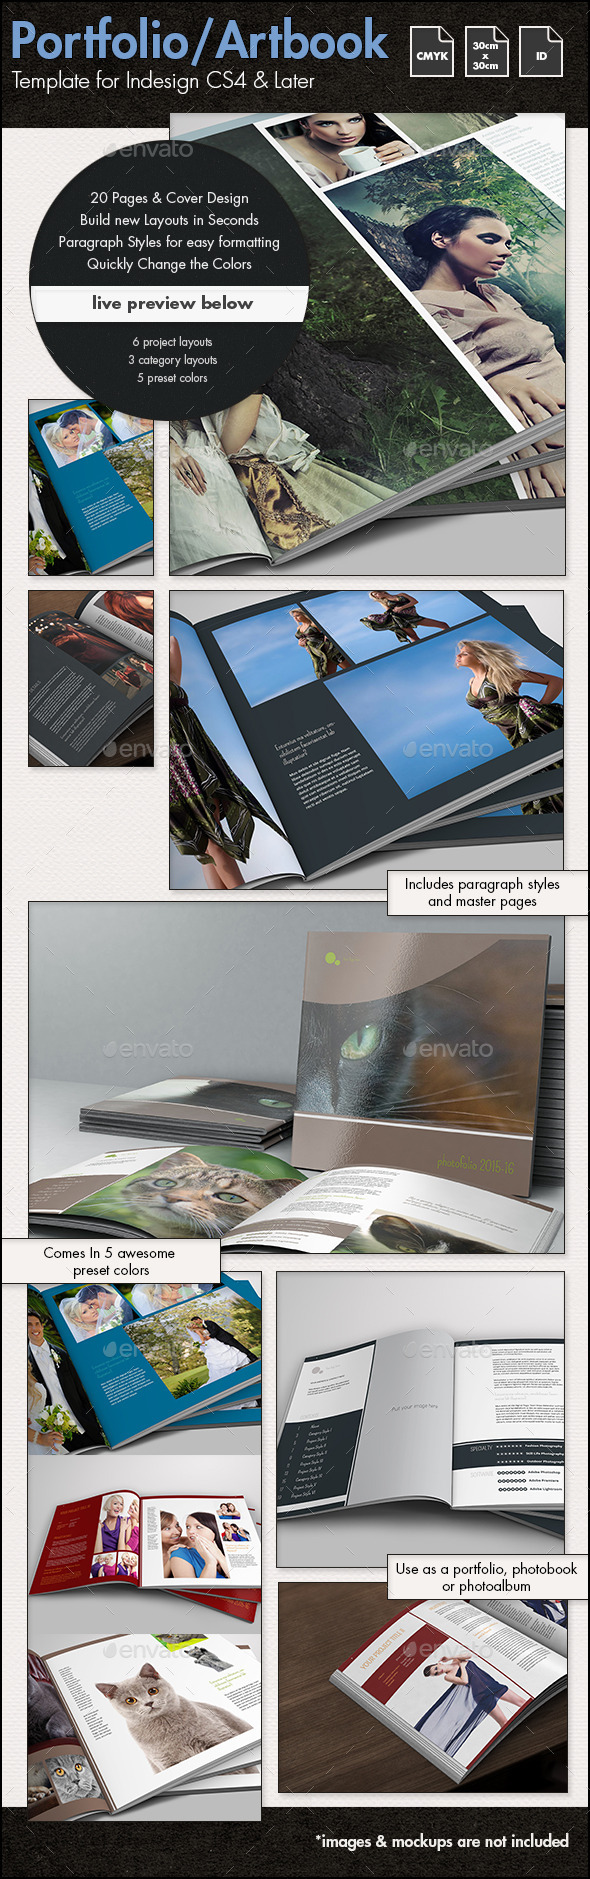 GraphicRiver Photobook Portfolio Artbook Template 30x30cm 11847515